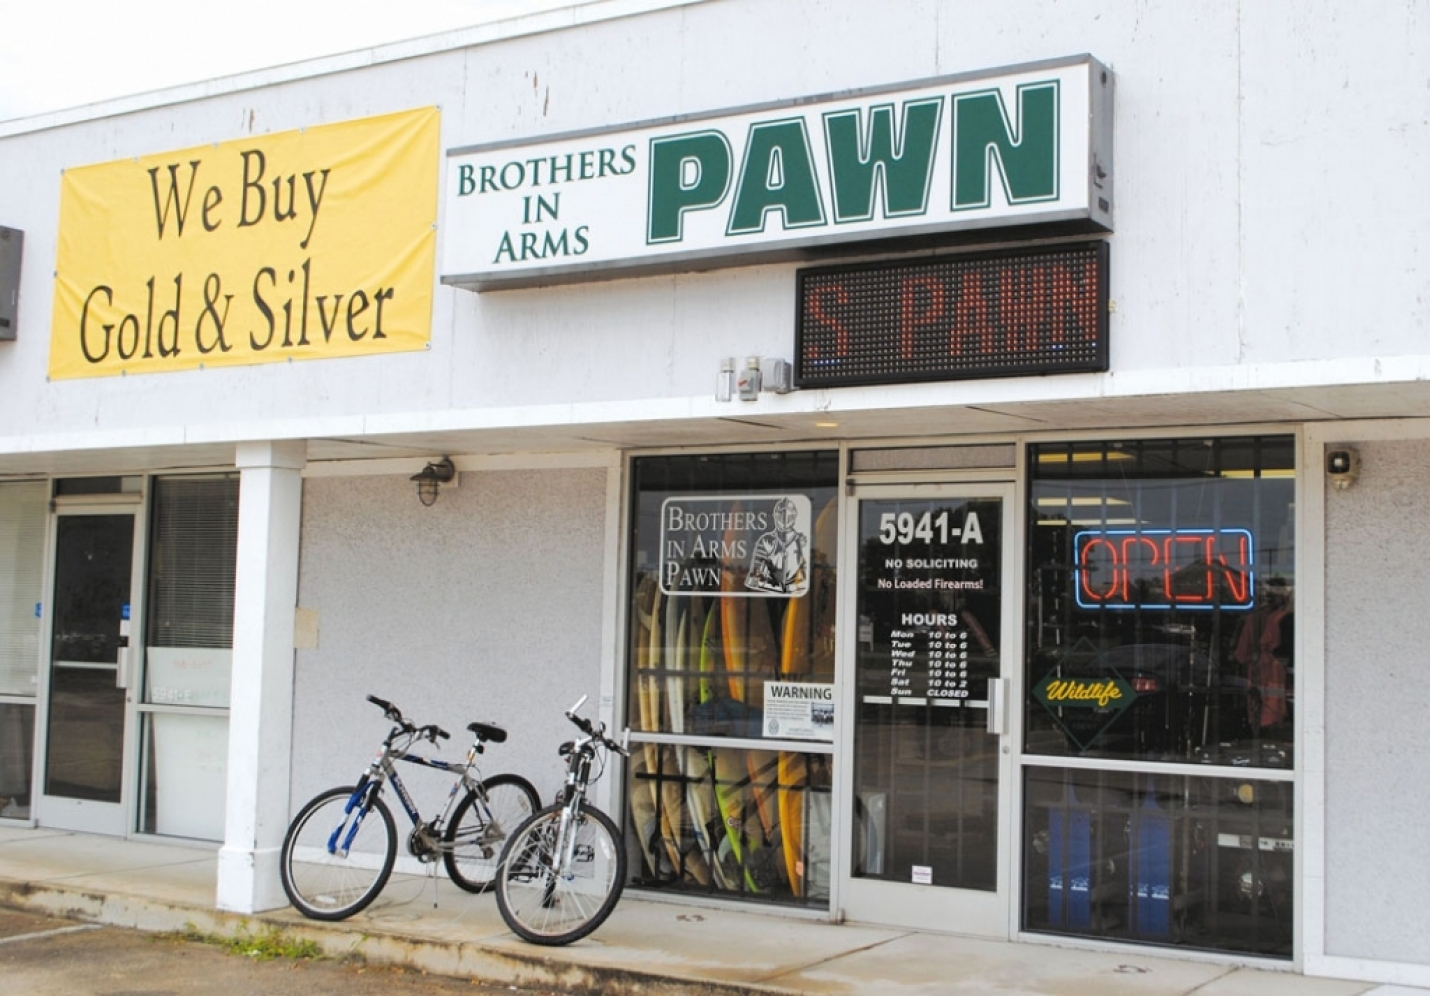 Brothers In Arms Pawn: We Buy Gold